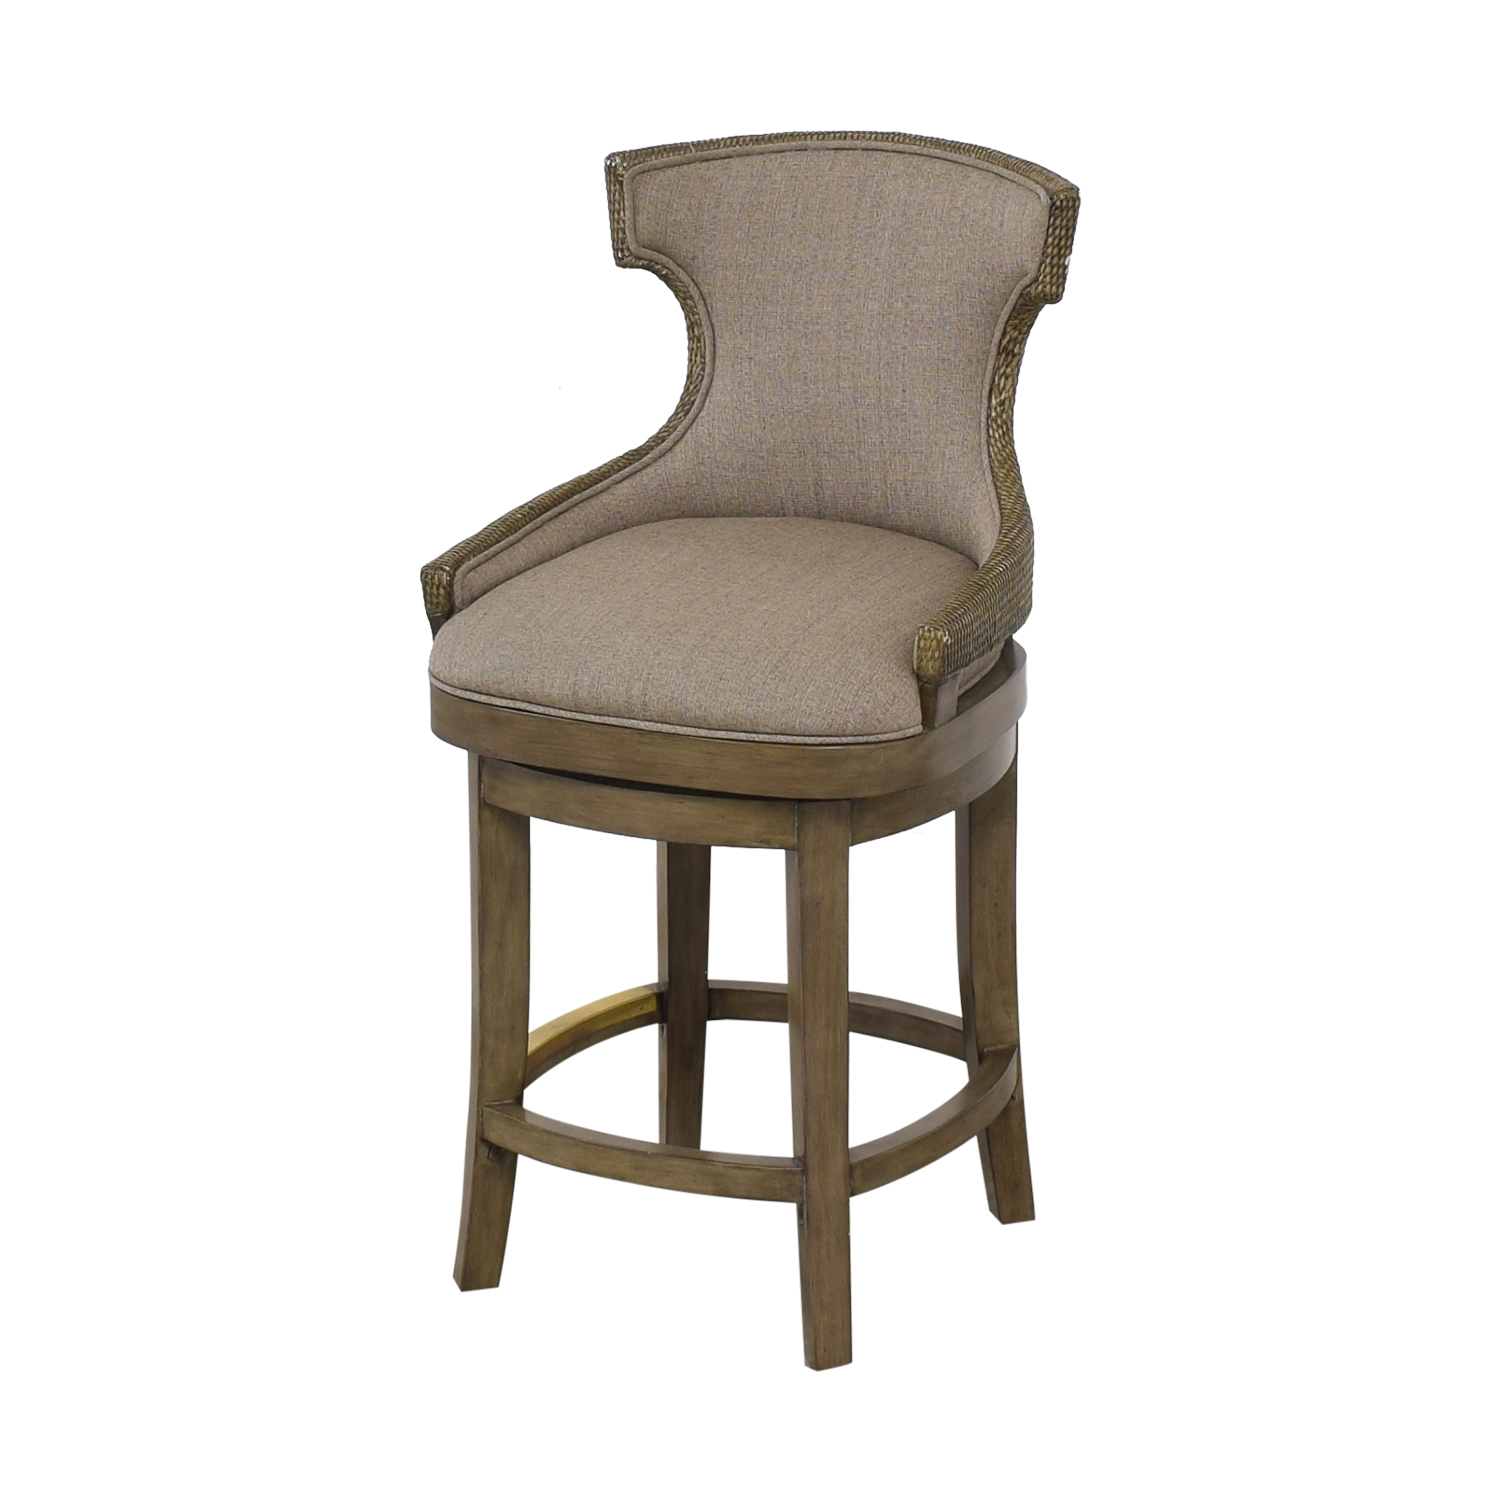 PI Inc Upholstered Swivel Bar Stools ma